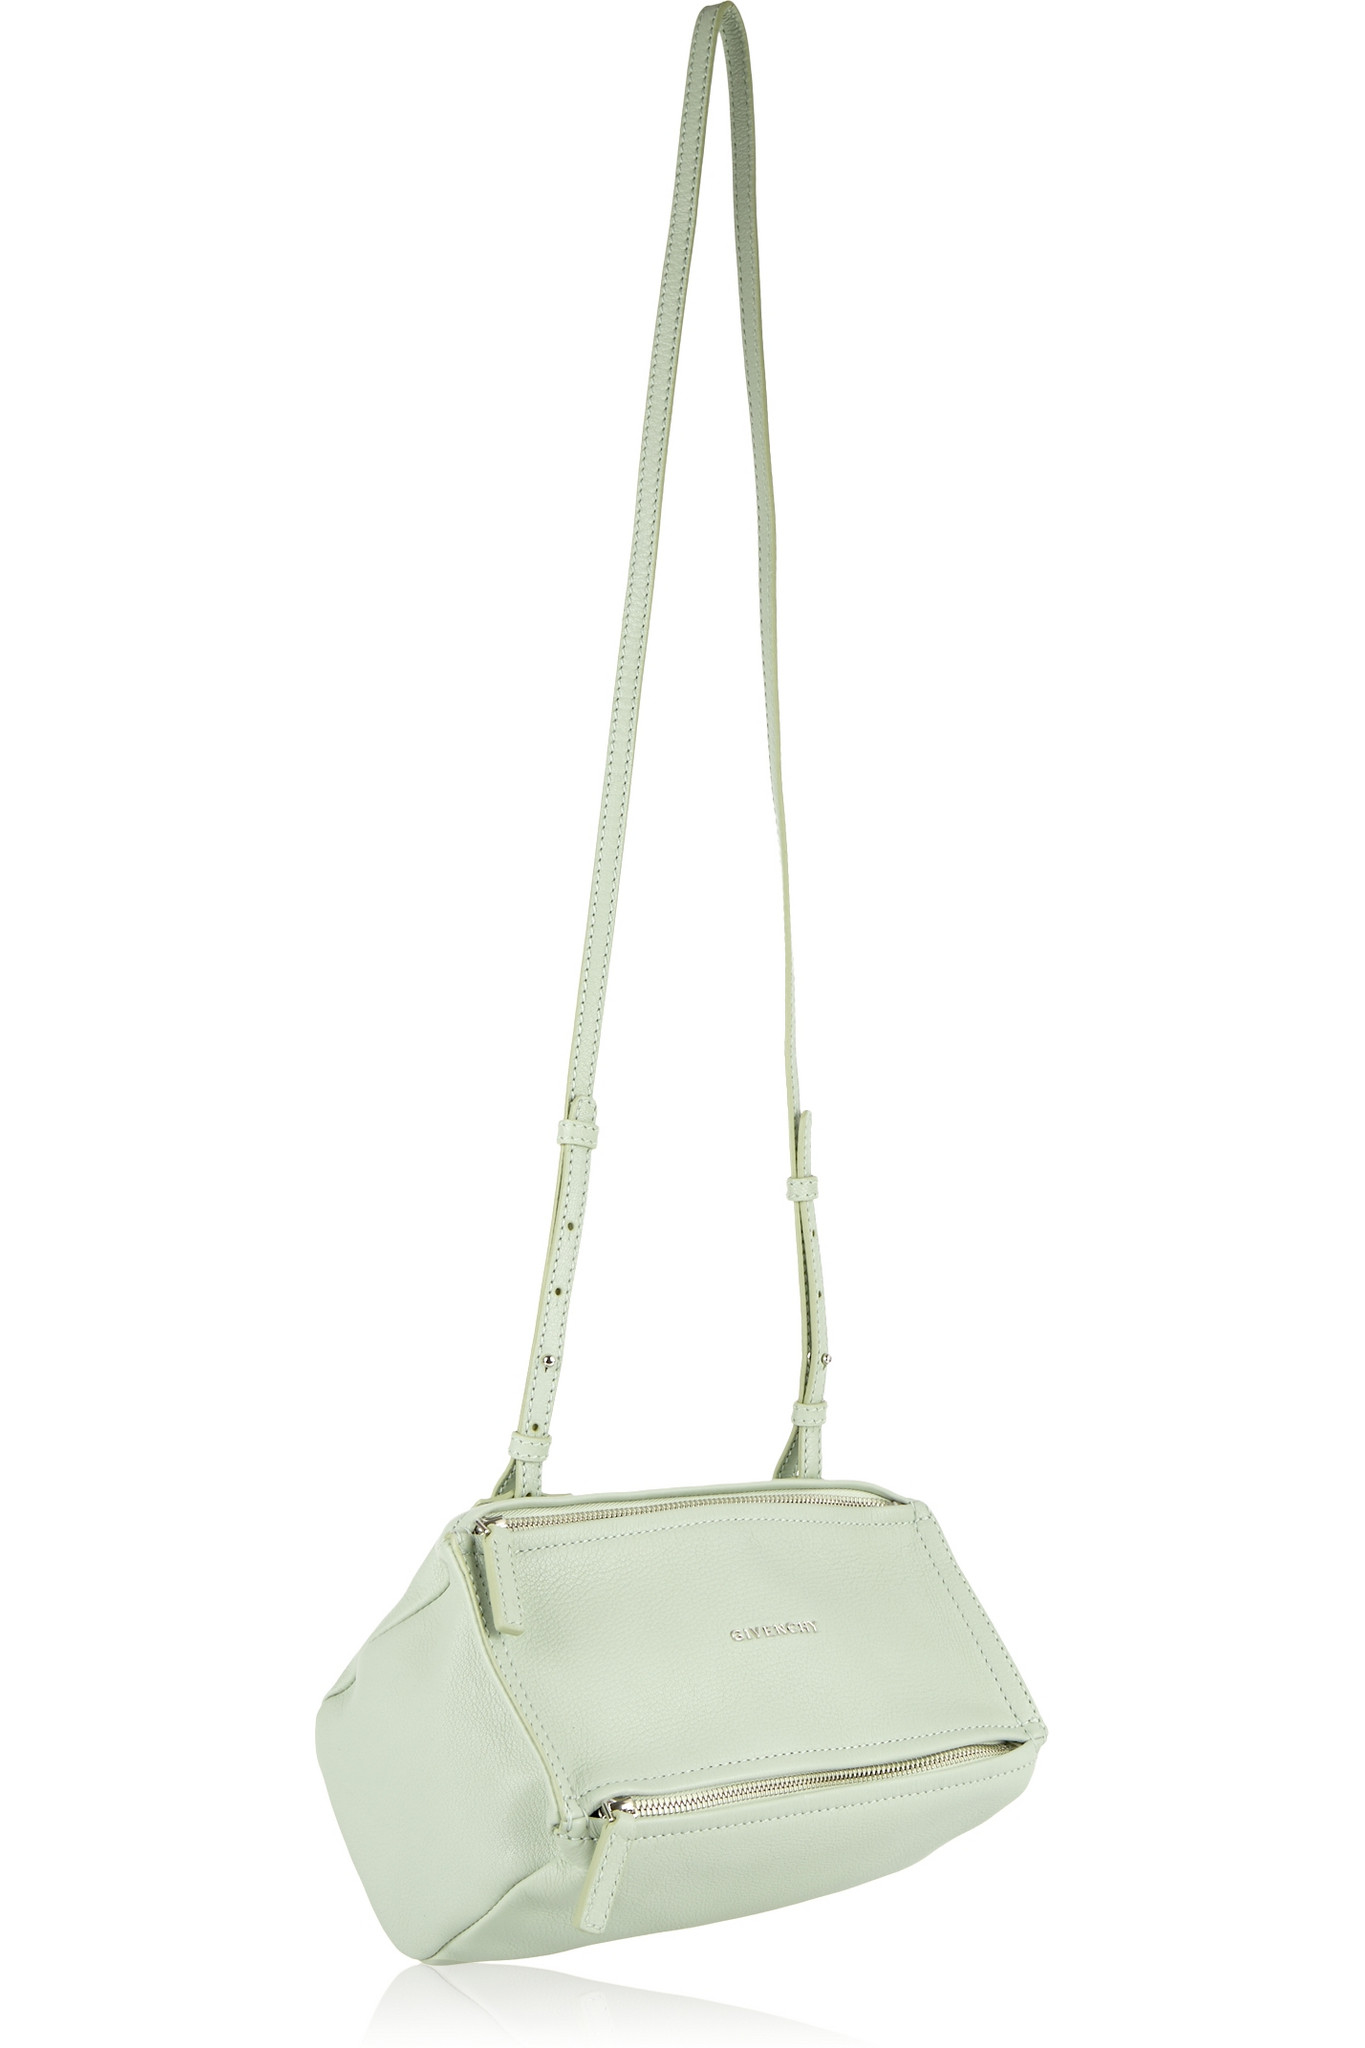 7fb6abaa9ee0 Lyst - Givenchy Mini Pandora Shoulder Bag In Mint Textured-leather ...